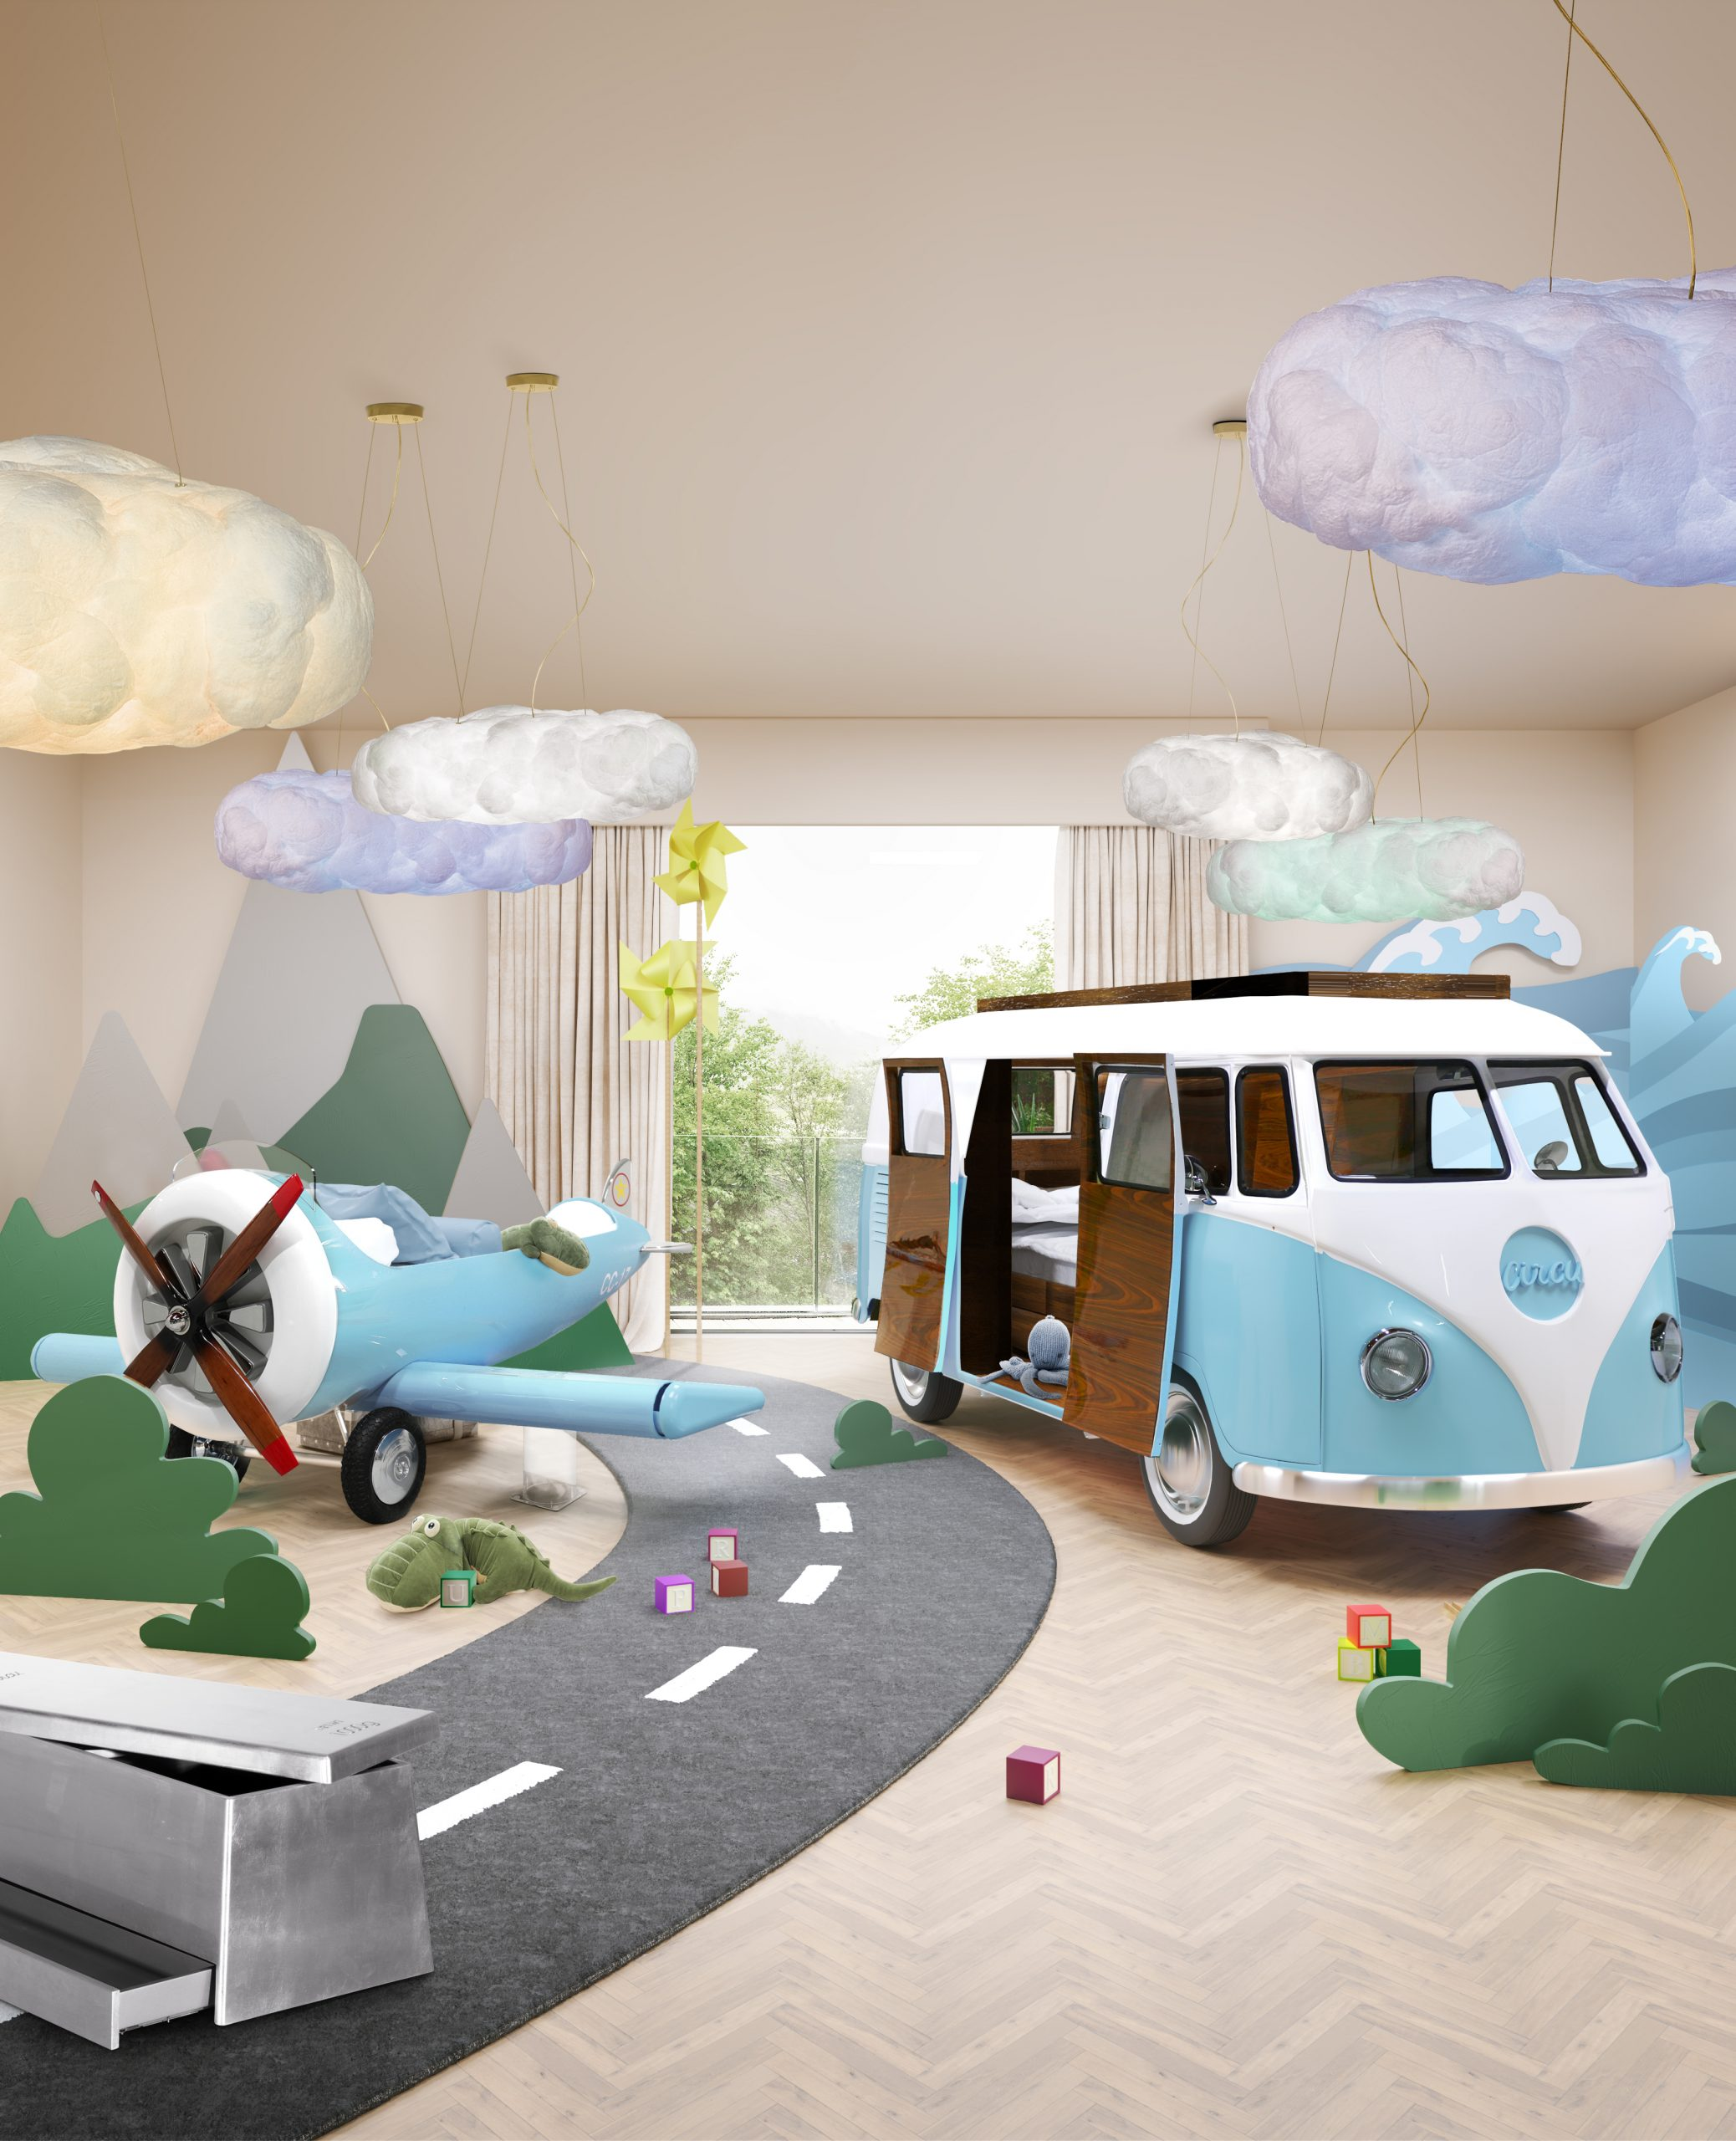 kids-bedroom-set-by-circu-magical-furniture-insplosion